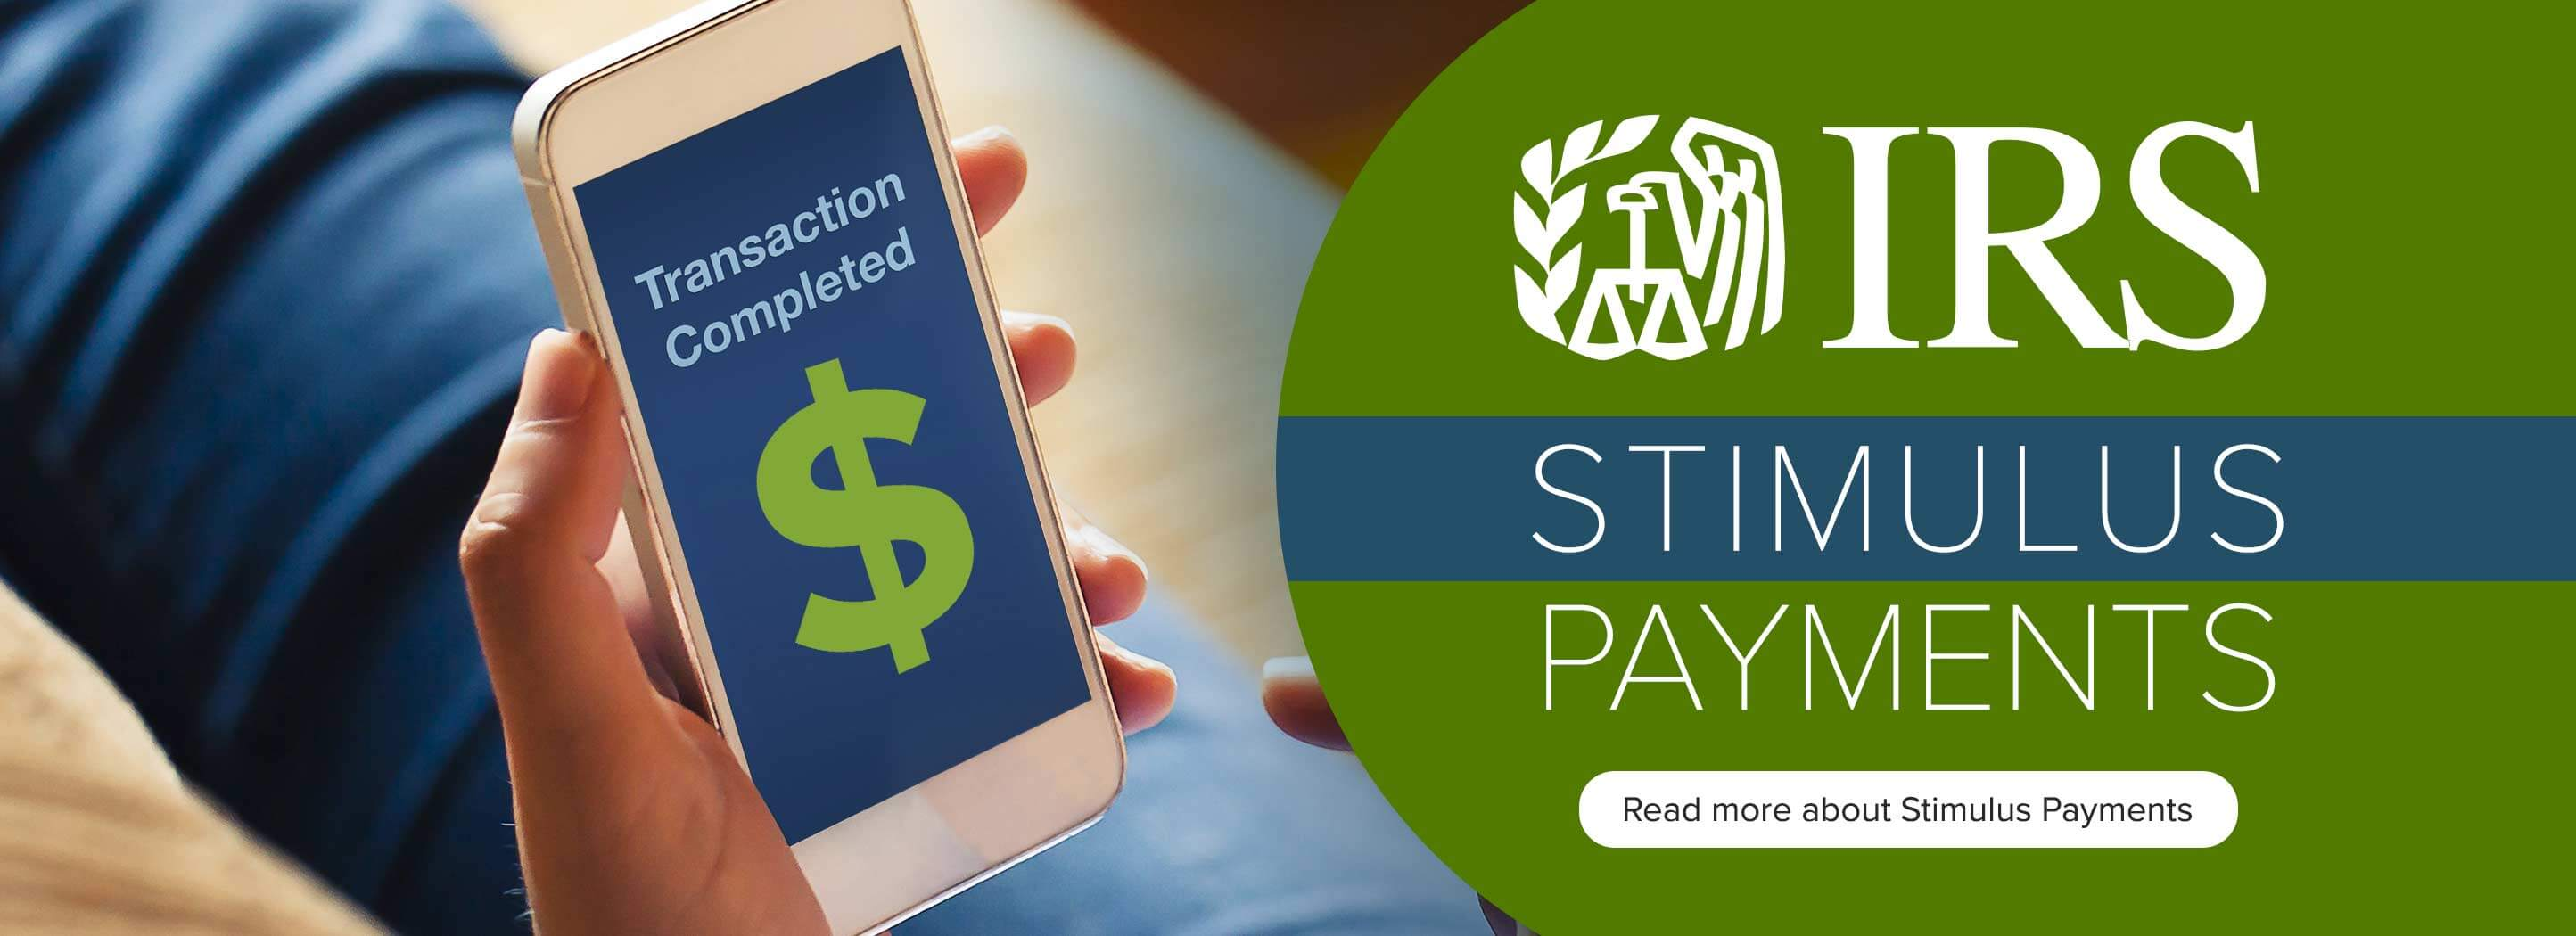 IRS STIMULUS PAYMENTS - Read More about Stimulus Payments